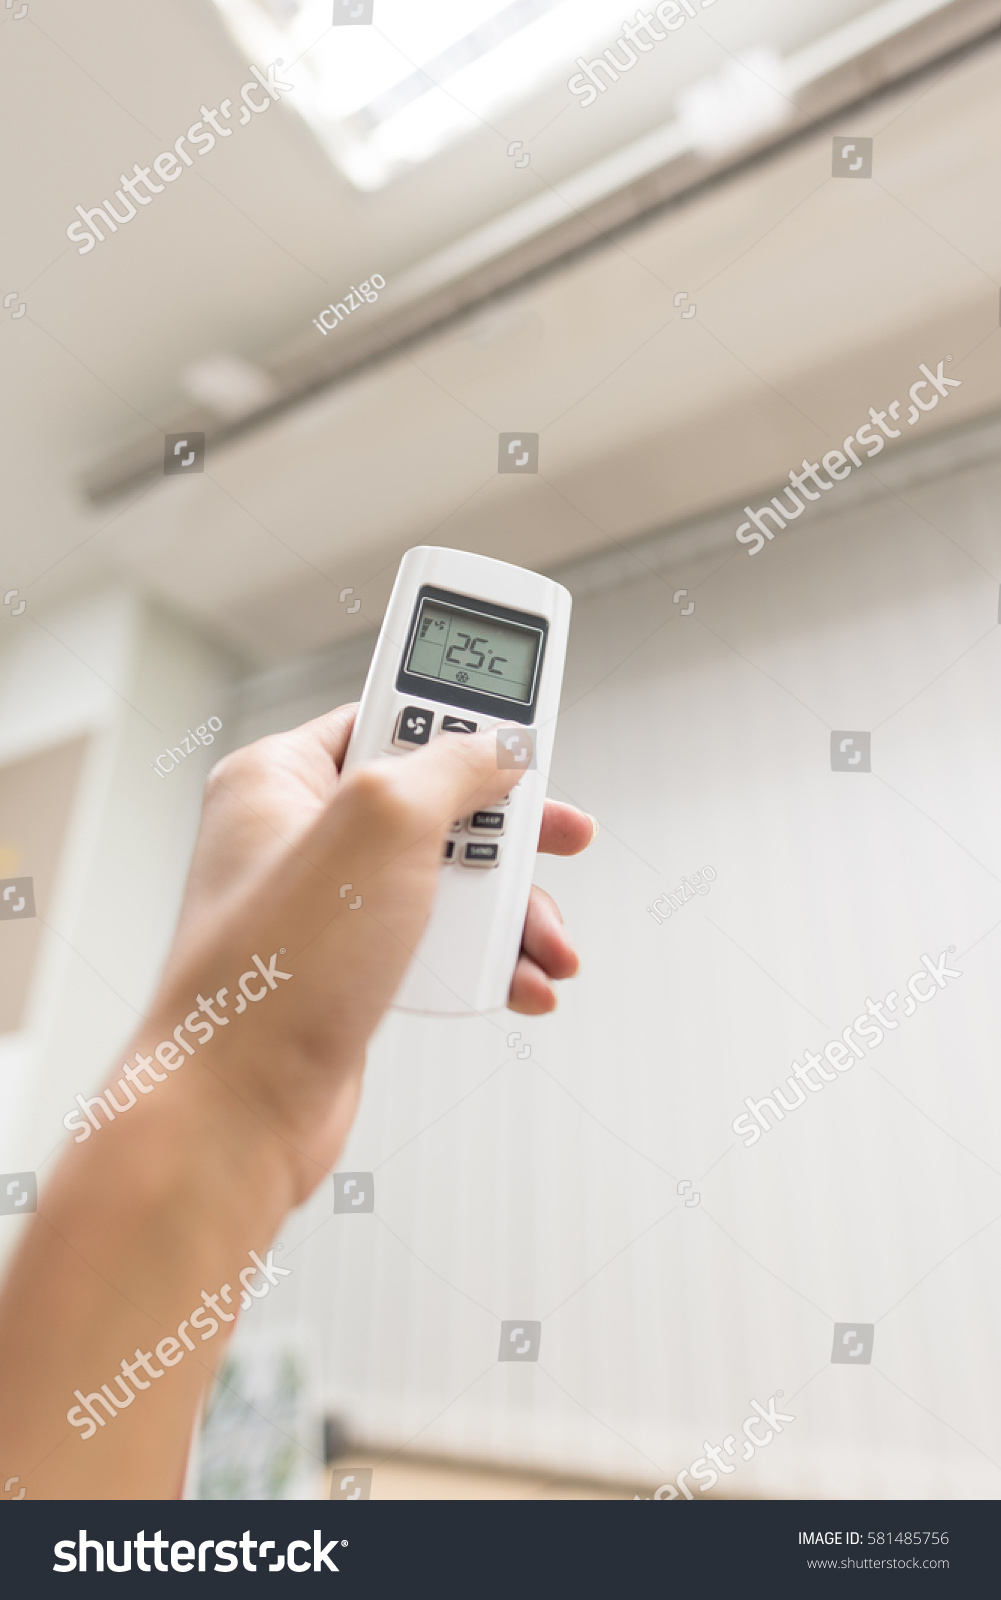 Hand Hold Air Conditions Remote Temperature Stock Photo